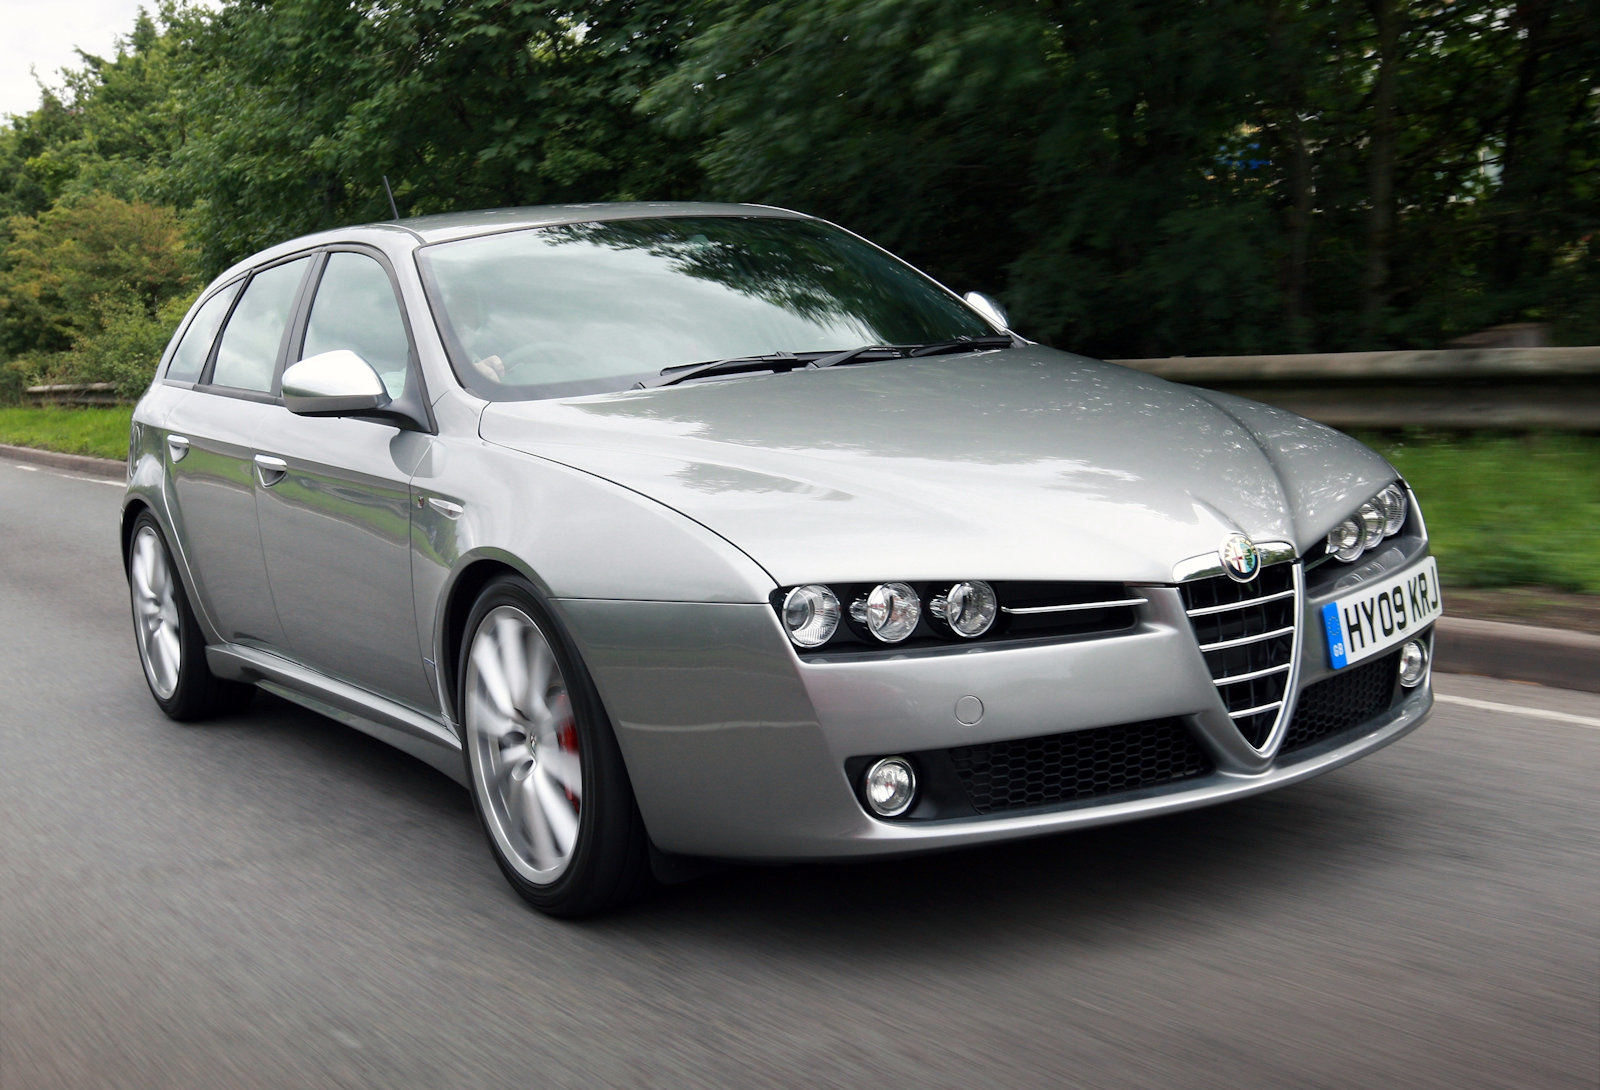 blog/199/CF247 Jul 10k Stylish cars Alfa 159